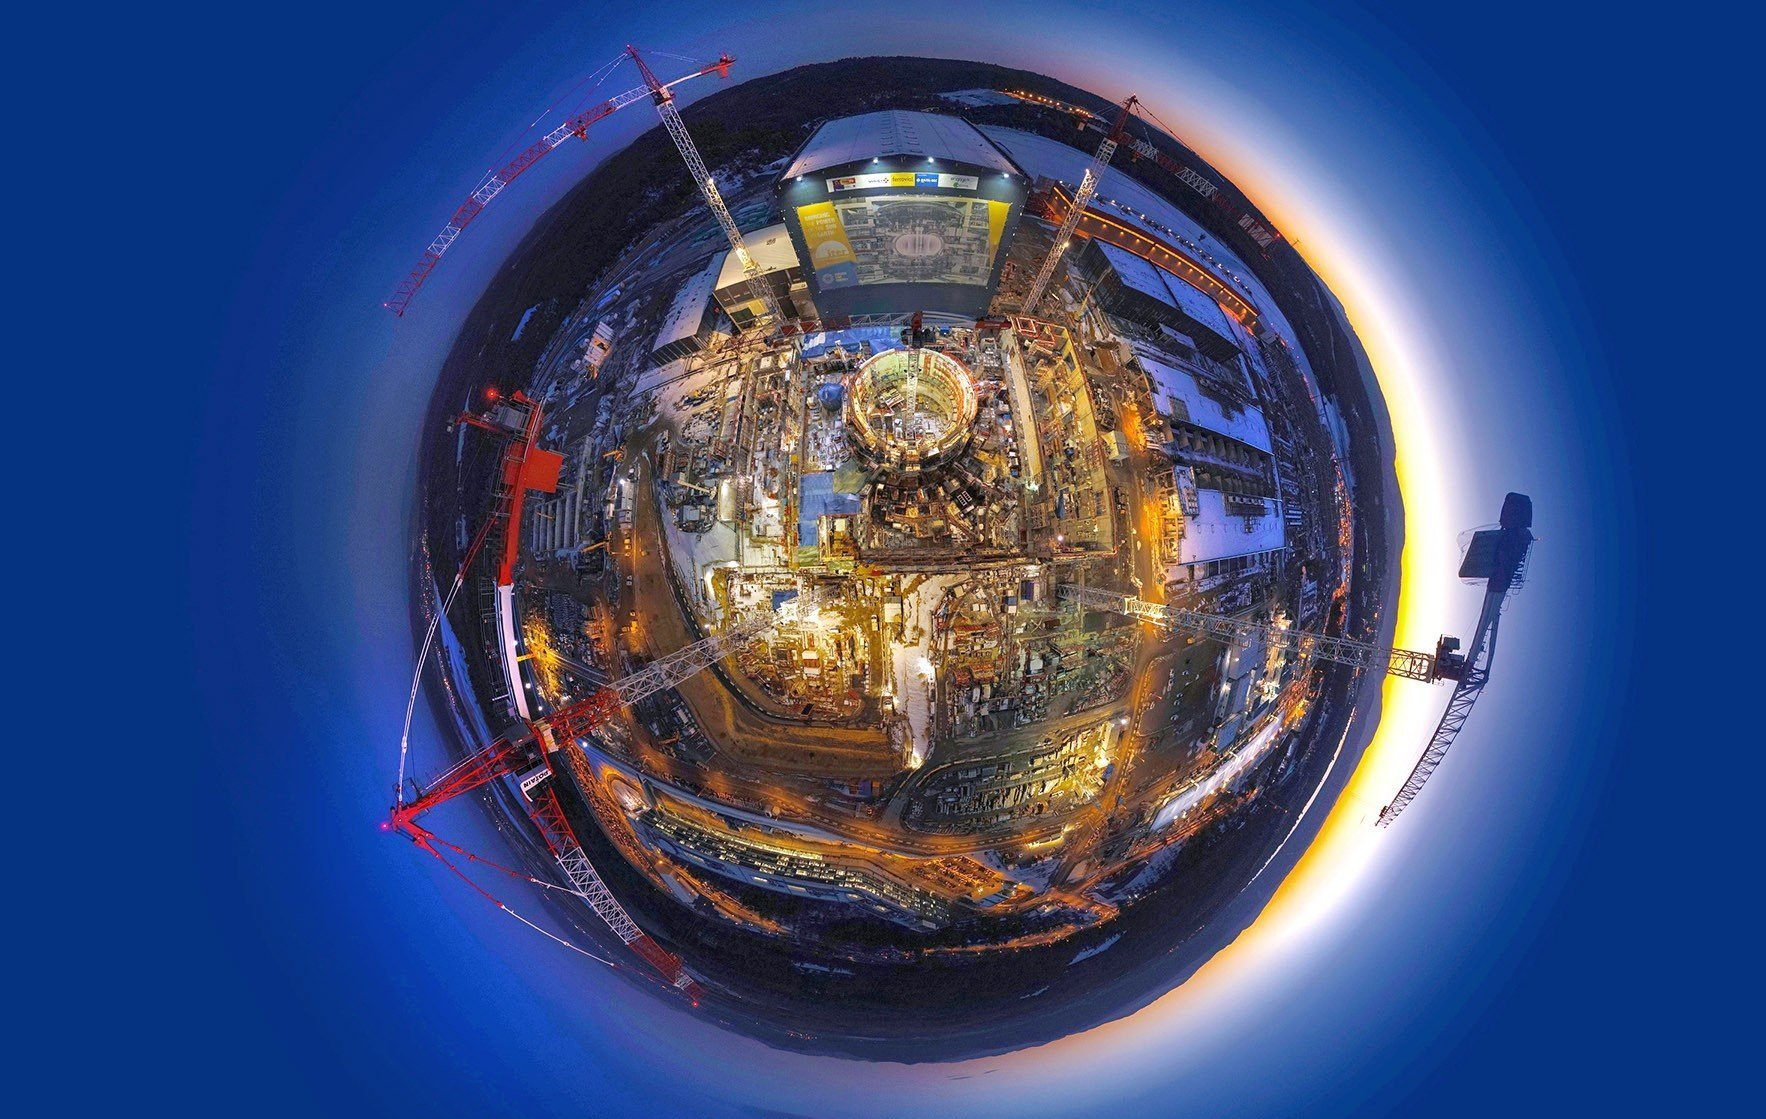 Circular lens view of the construction of the ITER facility.